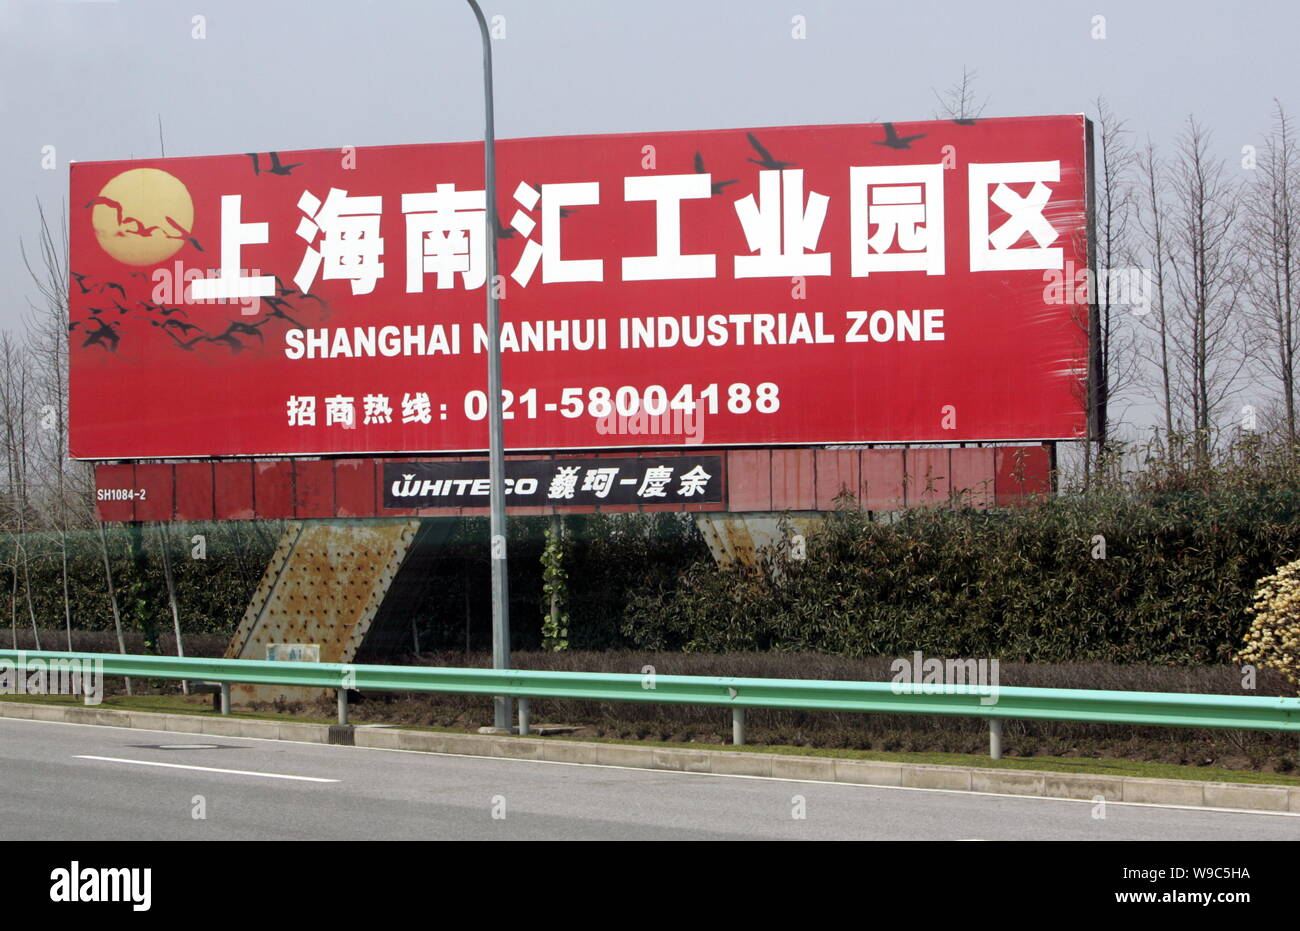 --FILE--A signboard for the Shanghai Nanhui Industrial Zone is seen on the roadside of a highway in Nanhui District in Shanghai, China, 17 March 2005. Stock Photo